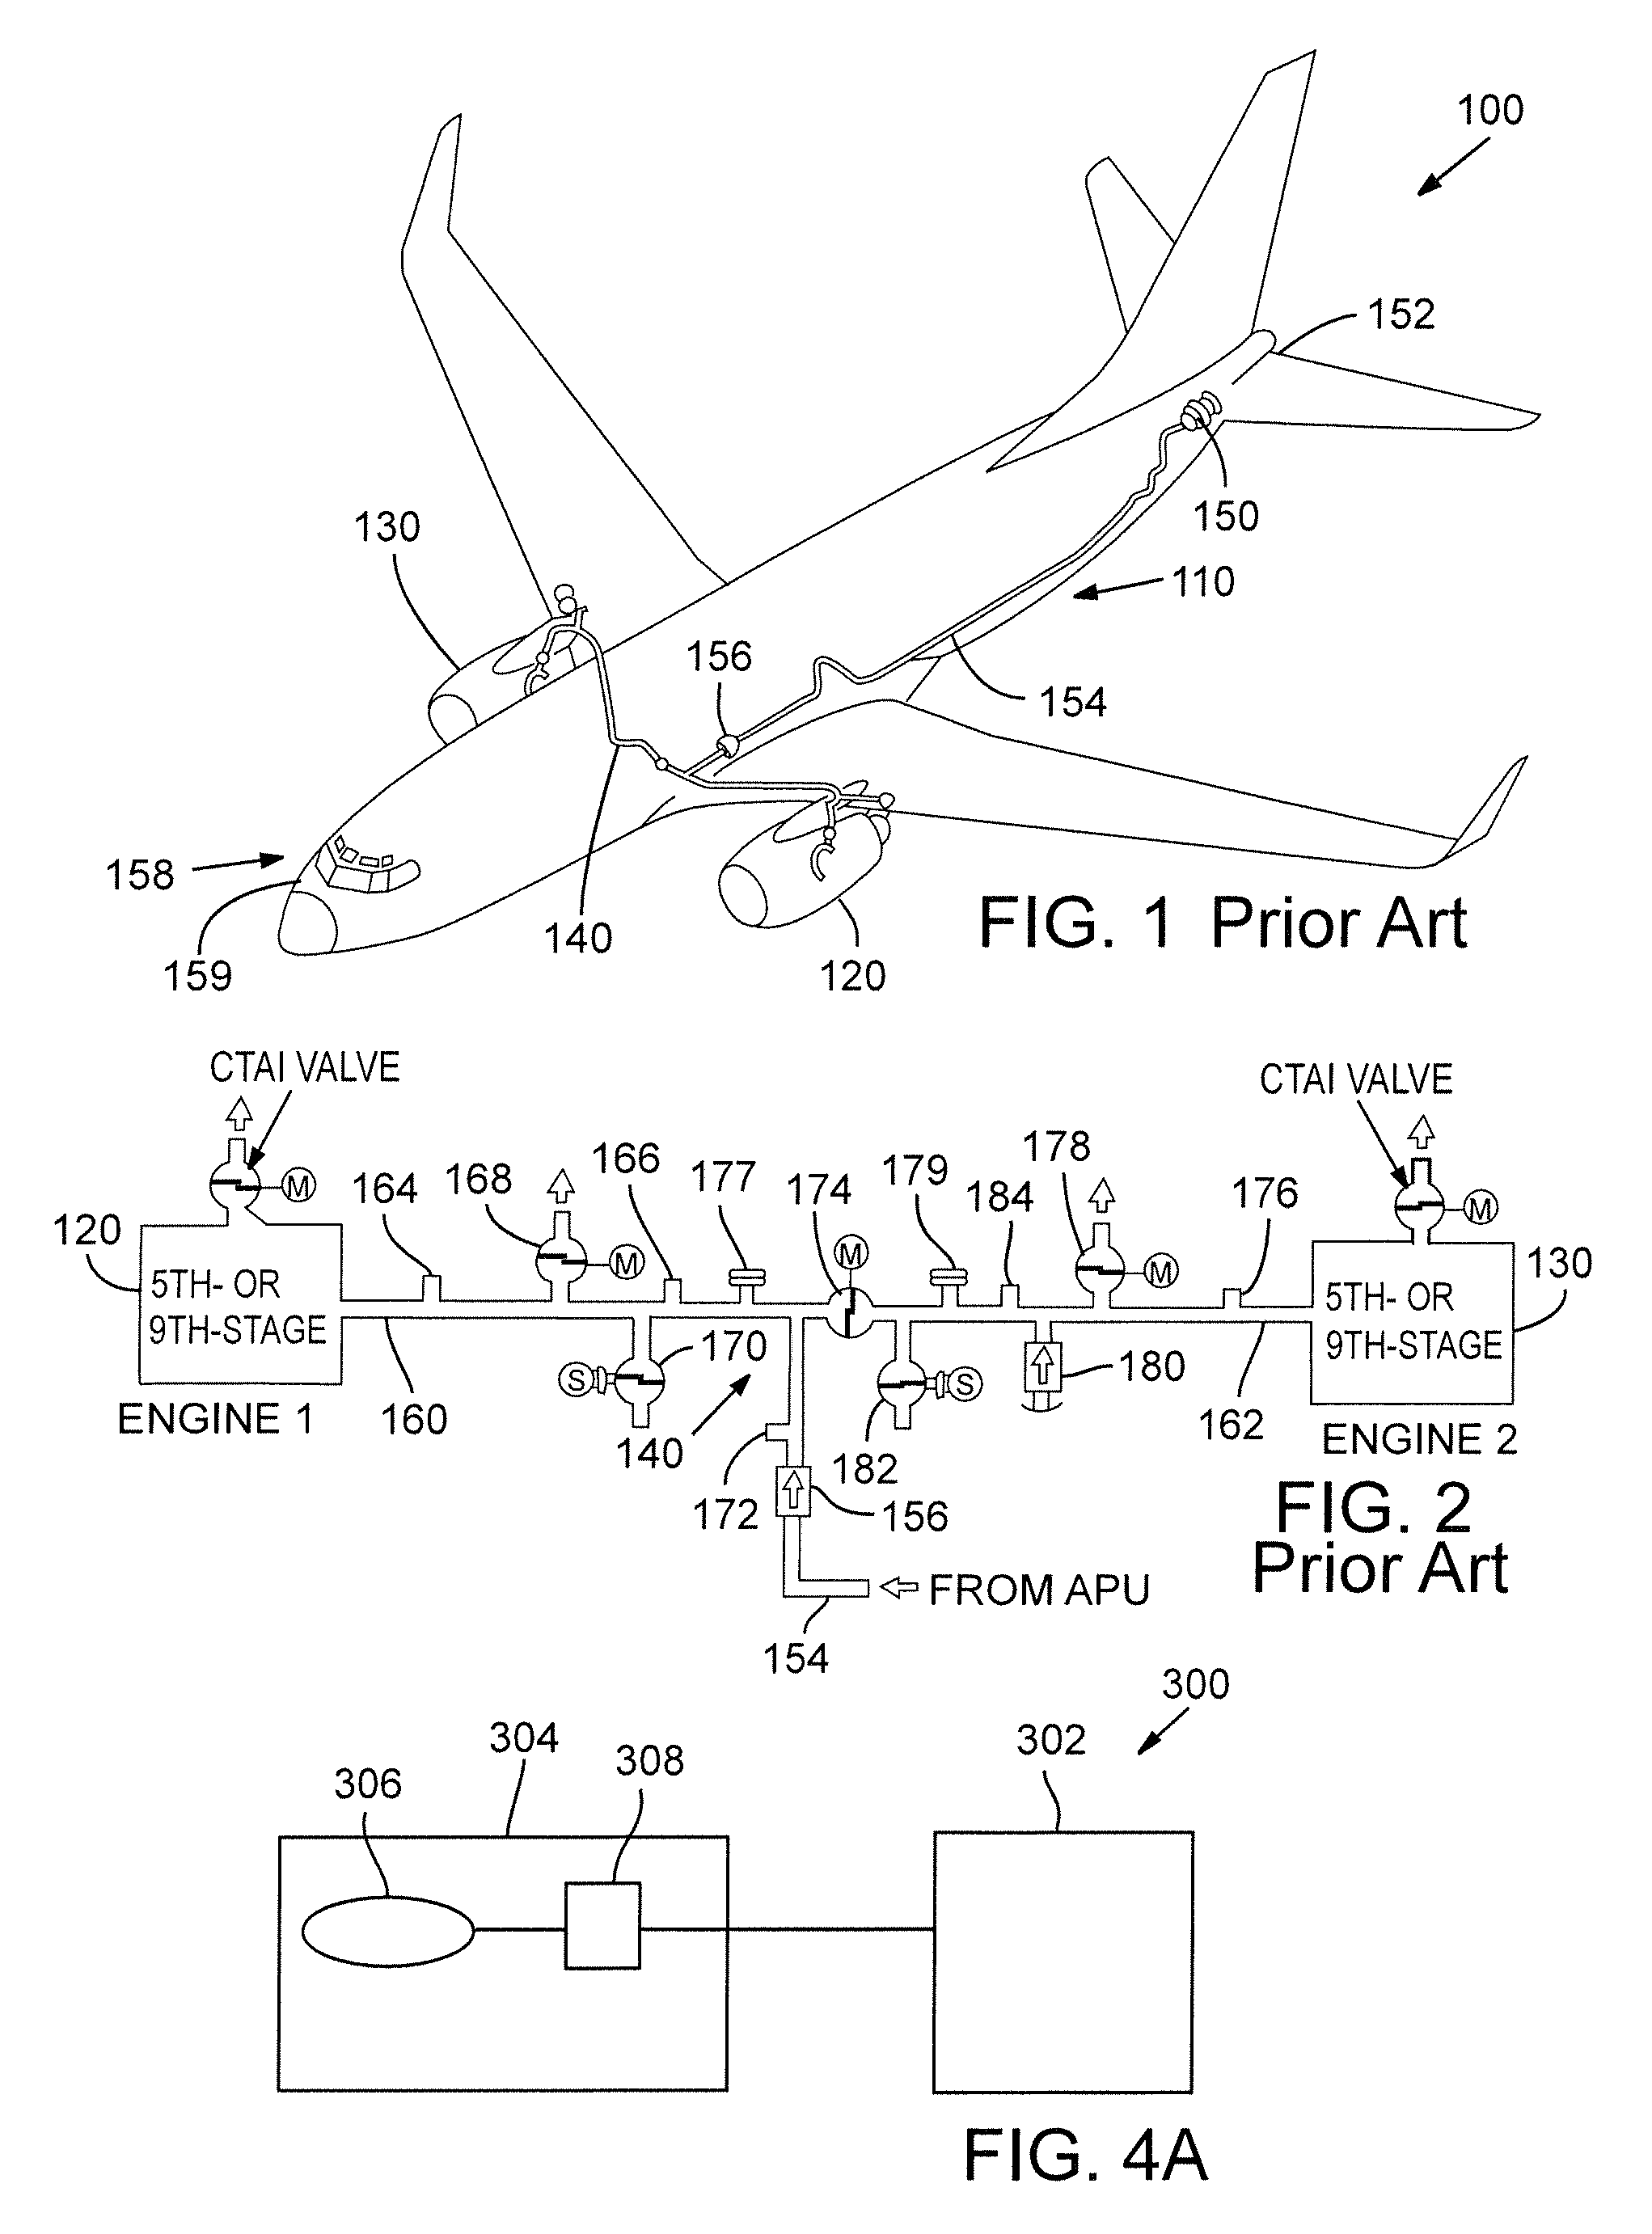 Boeing 737 Component Maintenance Manual